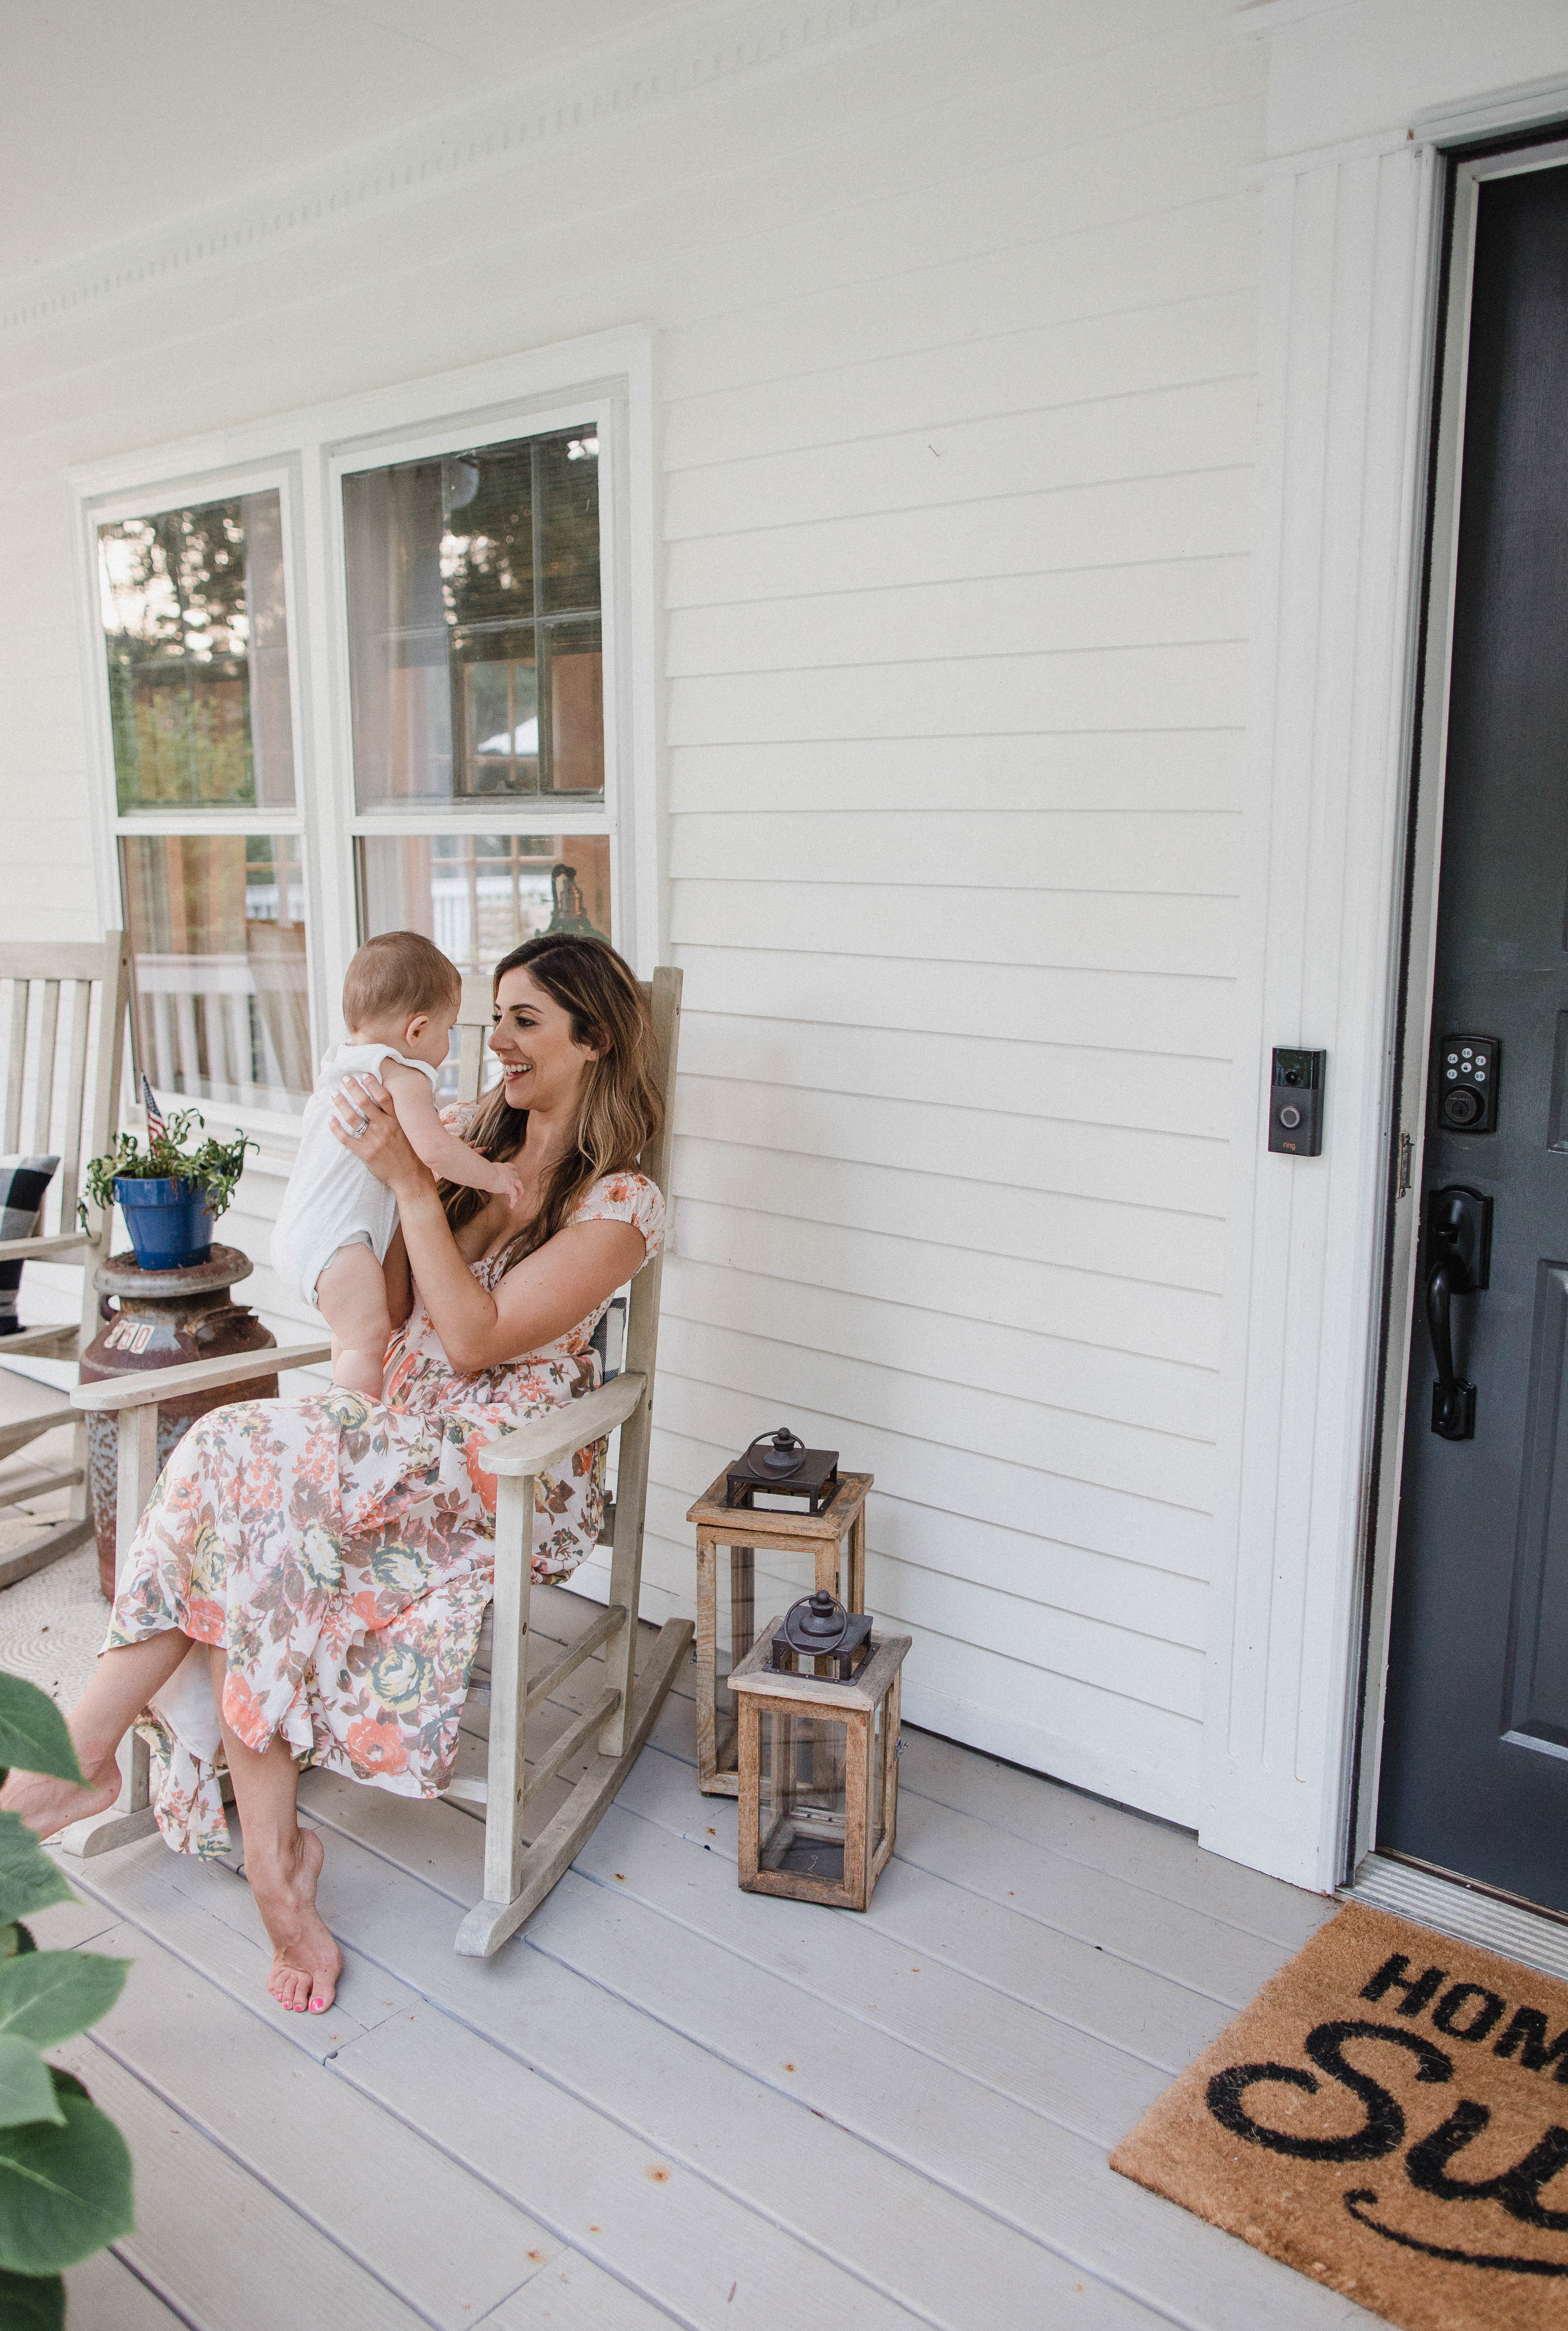 Connecticut life and style blogger Lauren McBride shares why her family loves the Ring Doorbell and how it gives her peace of mind in their home.